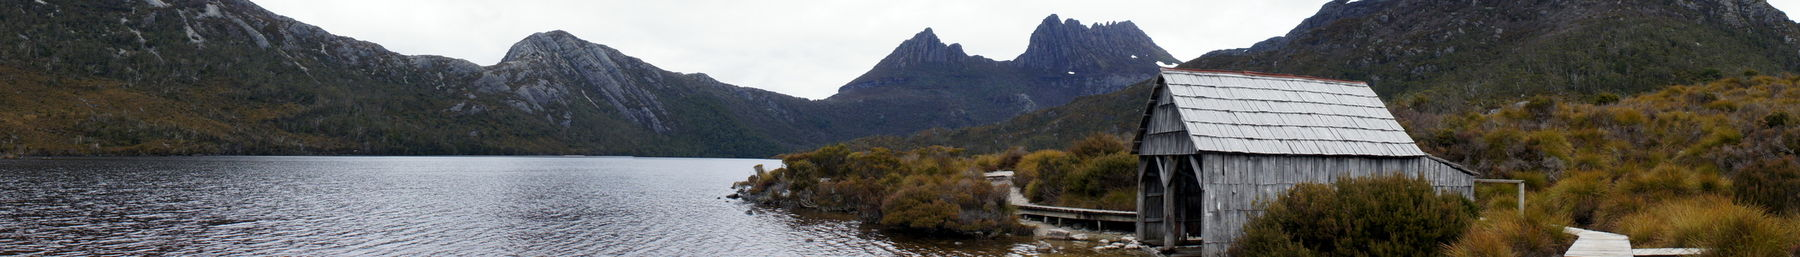 Cradle Mountain Lake St Clair banner Dove Lake.jpg